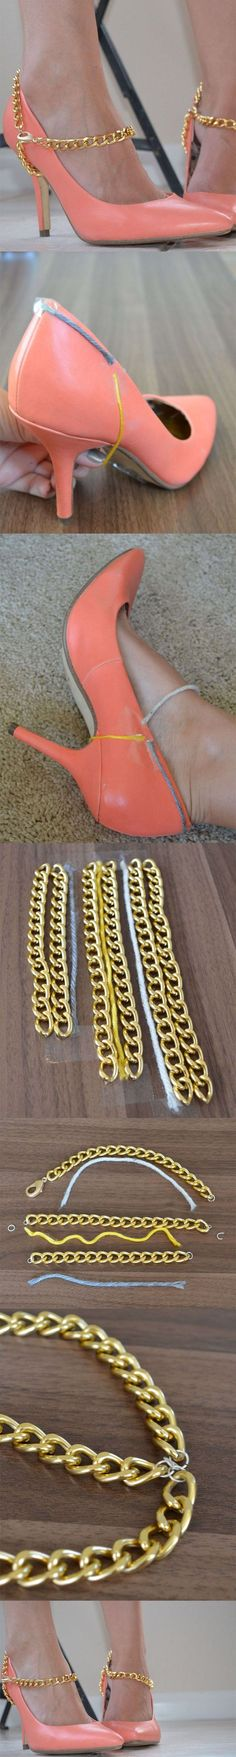 diy clothes | DIY: Jewelry Chains